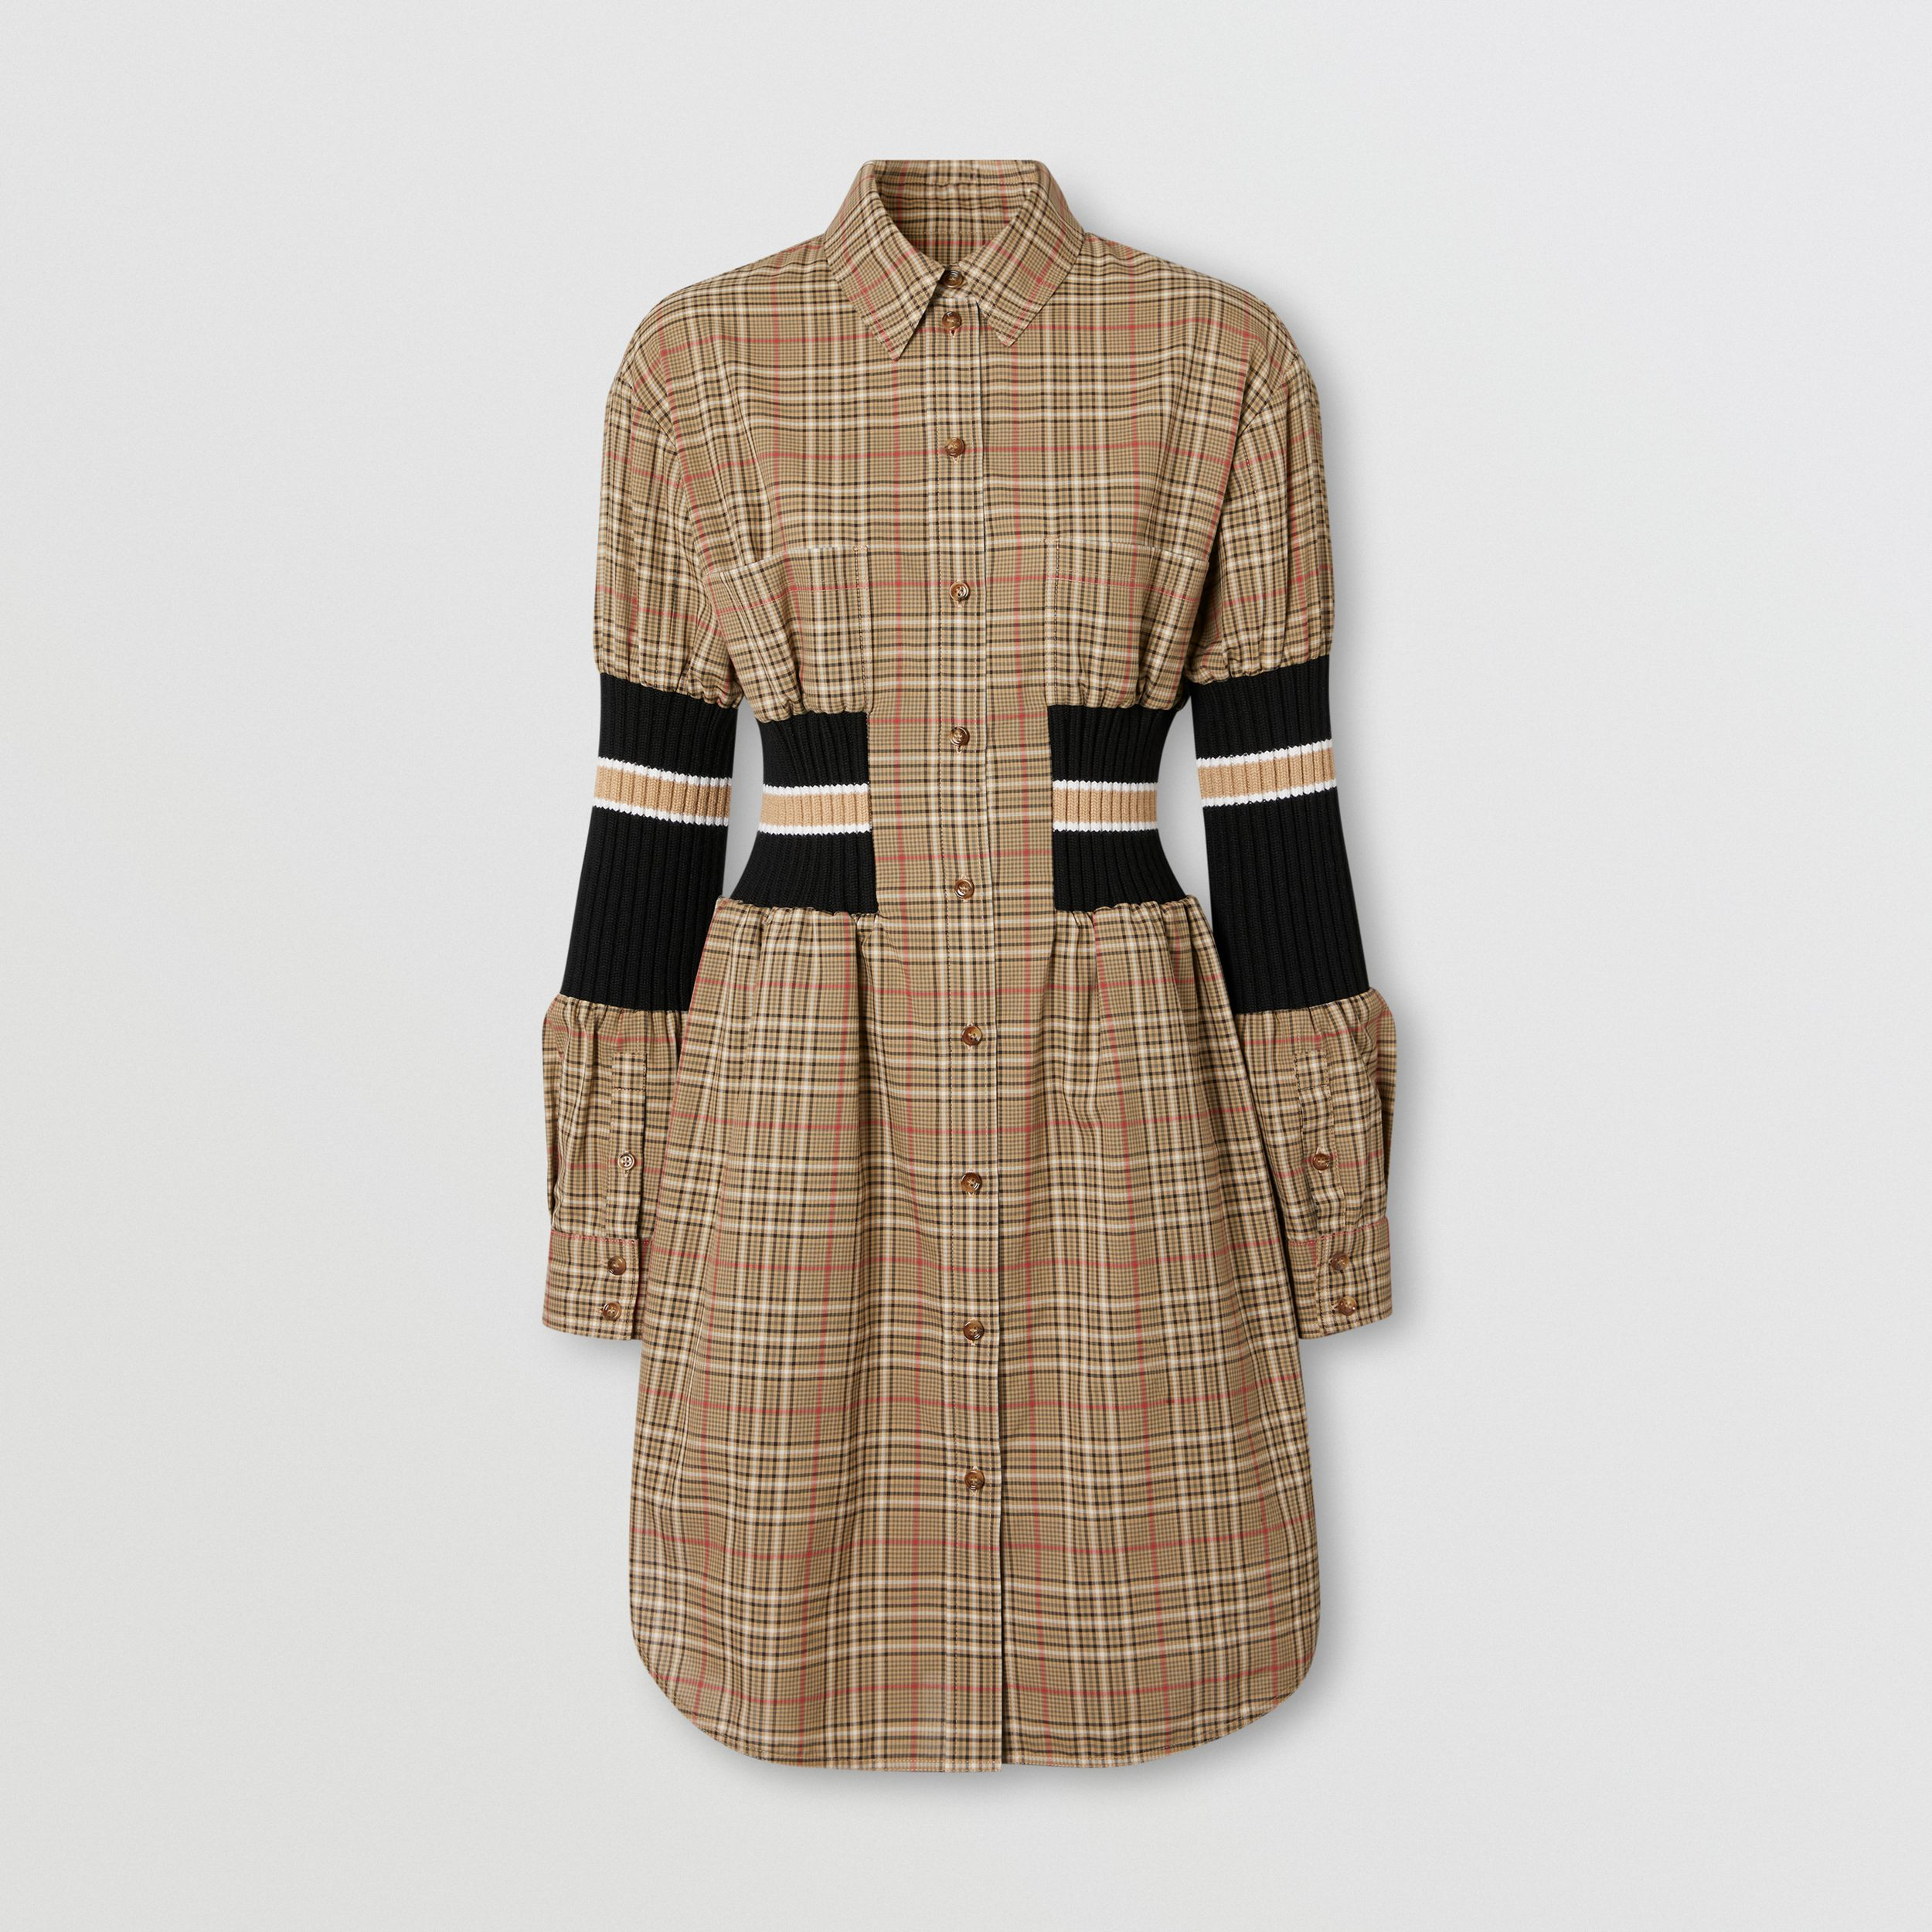 Rib Knit Panel Check Cotton Poplin Shirt Dress in Soft Fawn - Women | Burberry - 4